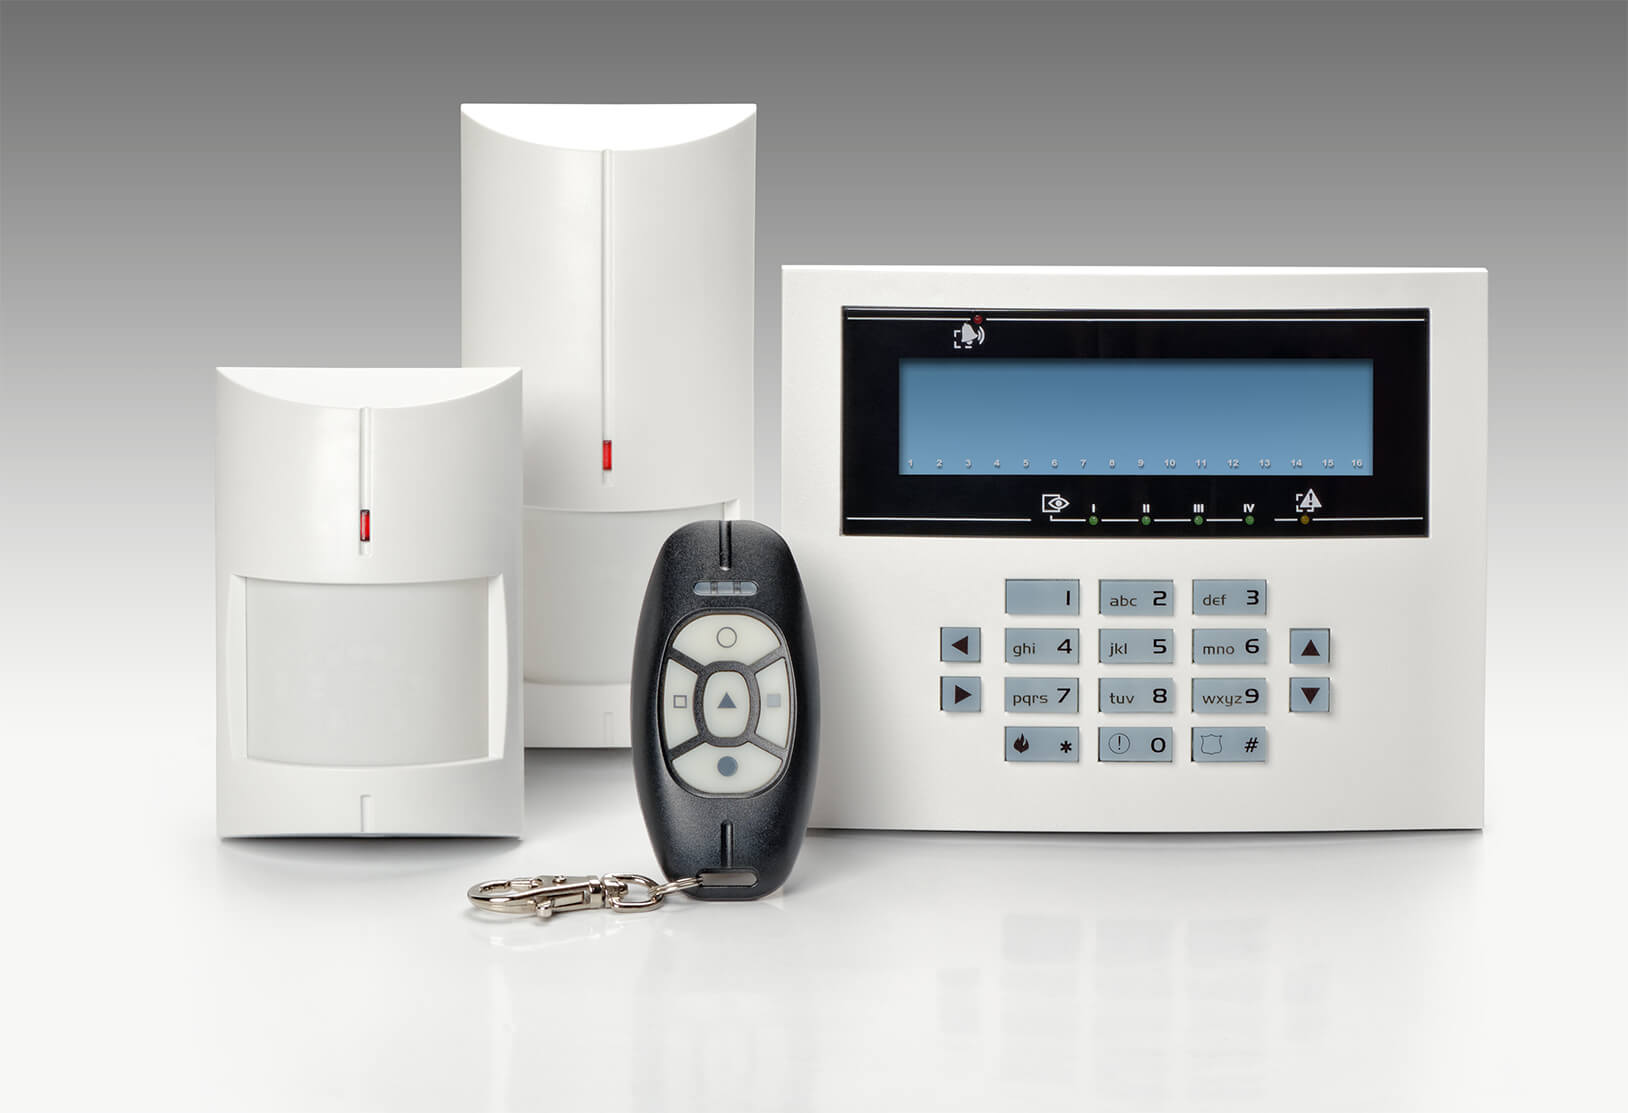 Business & Residential NSI / NACOSS Approved Burglar Alarms In Chelsea SW1 - Local Chelsea SW1 security company.Call 02078872244 - Dedicated to Safety & Security. Companies, shops and homes ..